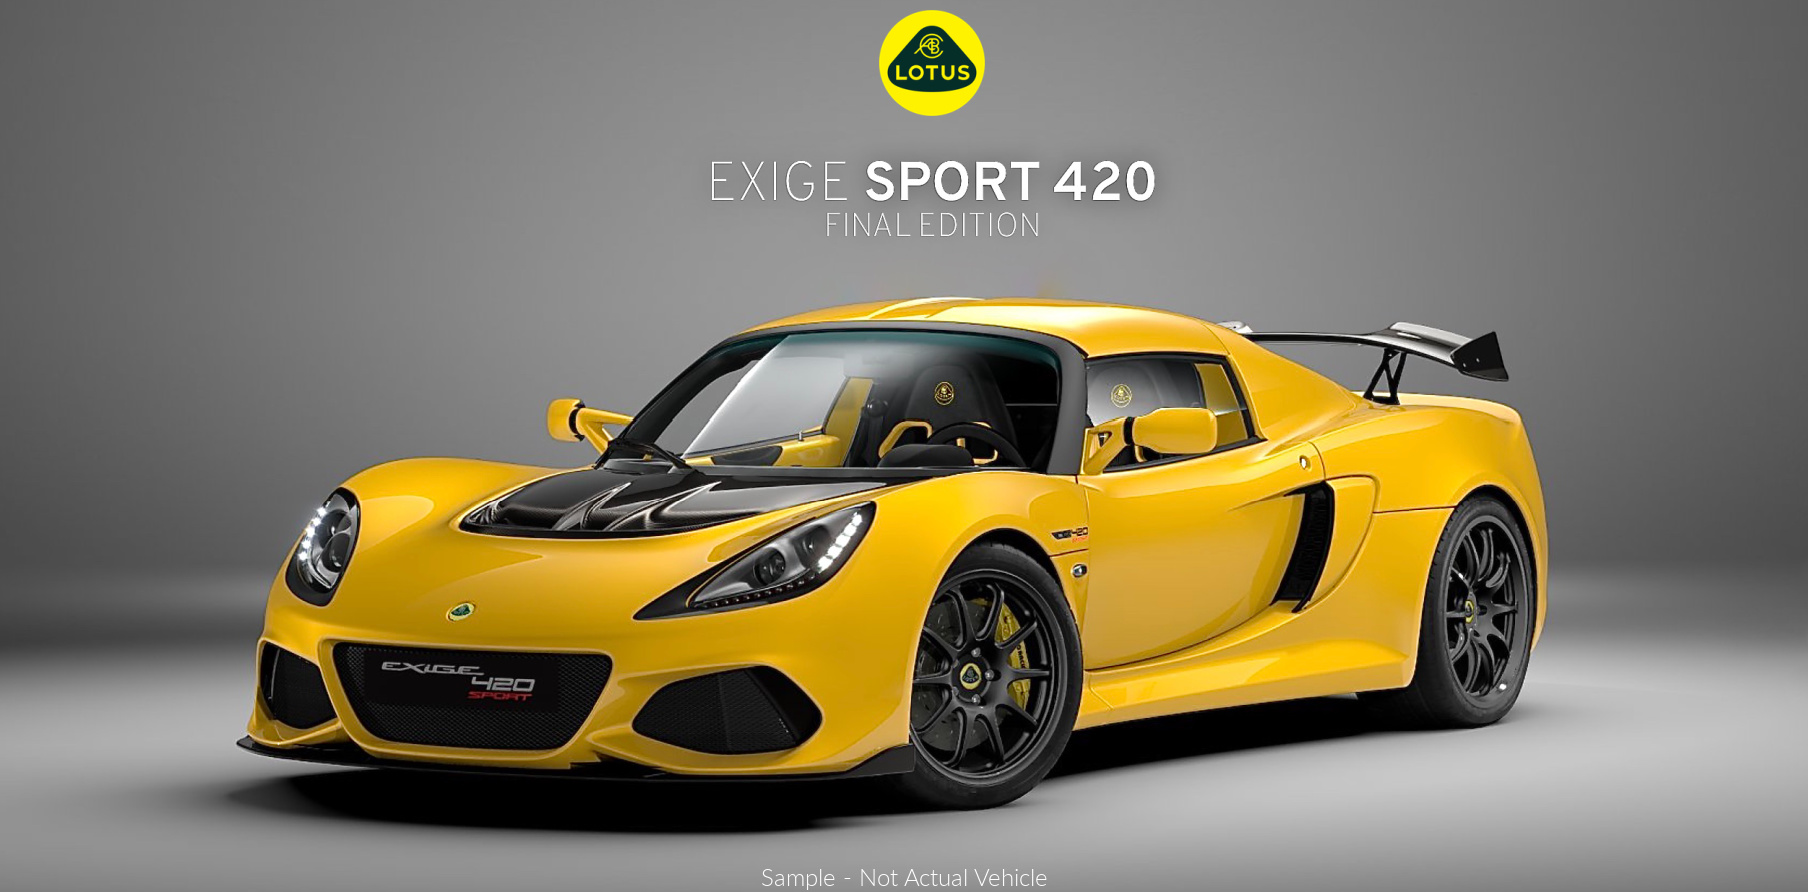 Lotus Exige Sport 420 Final Edition Solid Yellow for Sale Perth